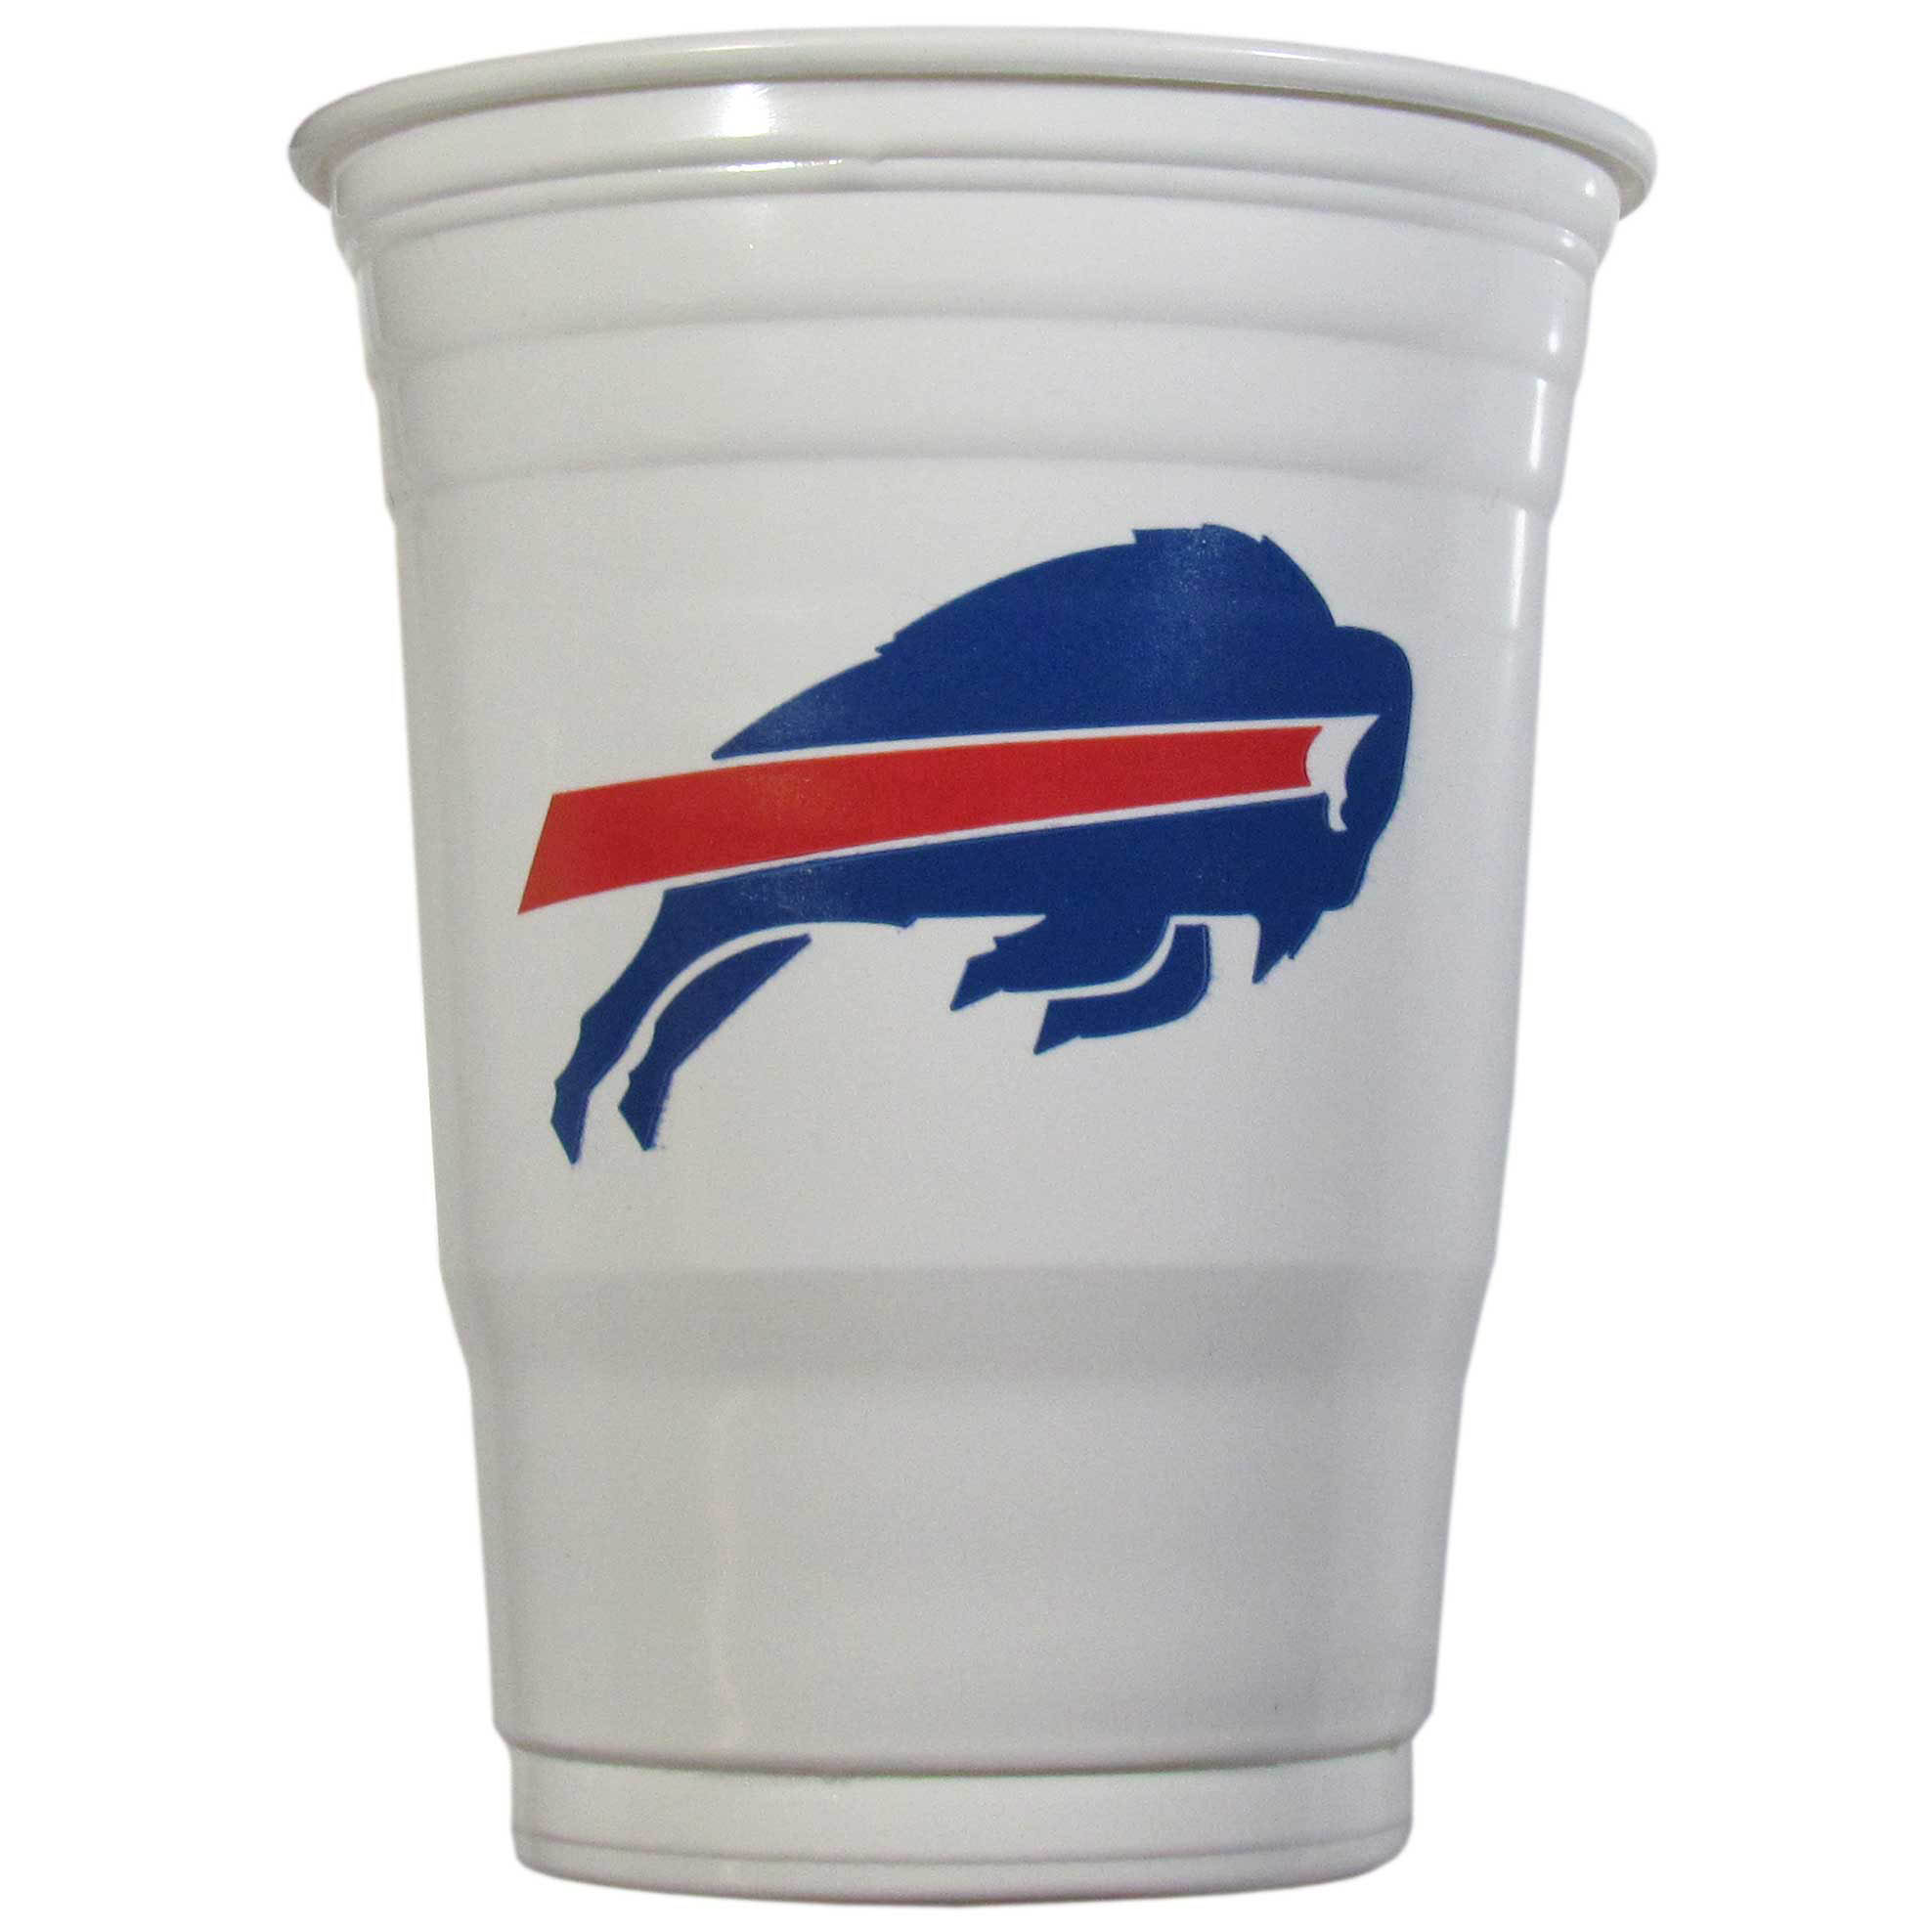 Buffalo Bills Plastic Game Day Cups 2 sleeves of 18 (36 Cups) - Our 18 ounce game day cups are what every tailgating or backyard events needs! The cups feature a big Buffalo Bills logo so you can show off your team pride. The popular 18 ounce size is perfect for drinks or ping pong balls! 2 sleeves of 18 cups, 36 cups in total.